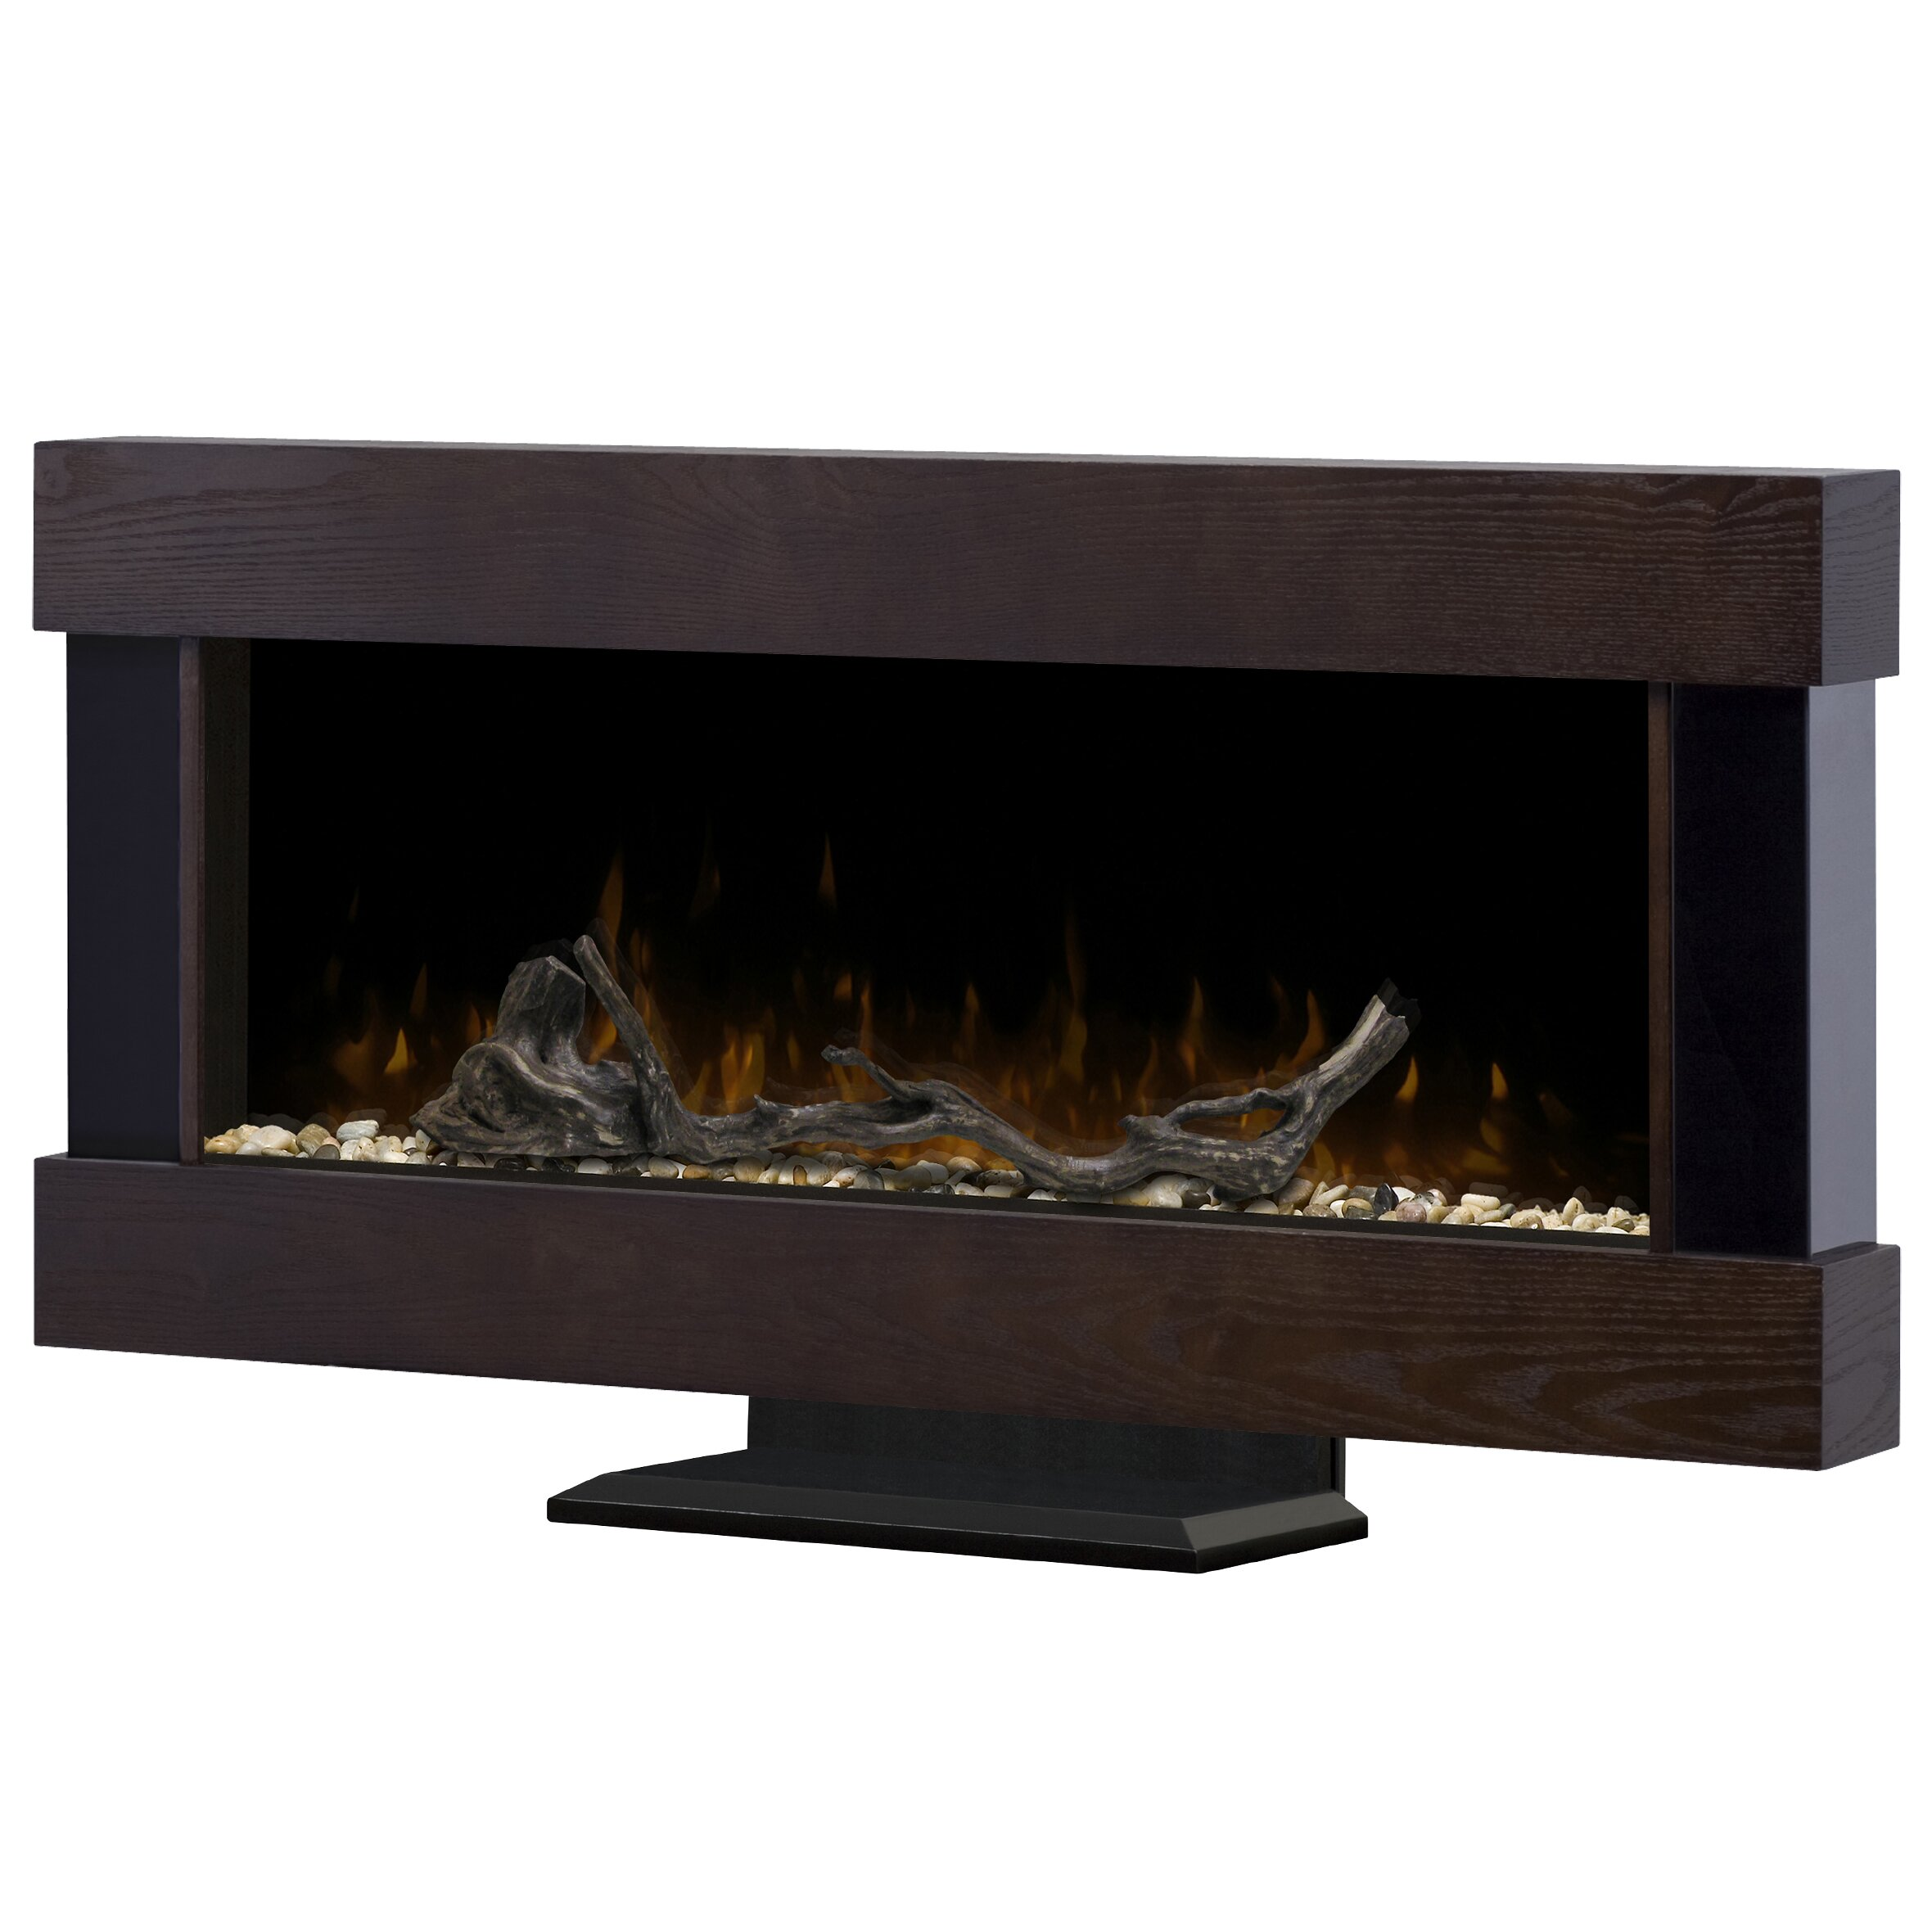 Dimplex Chalet Wall Mounted Electric Fireplace & Reviews